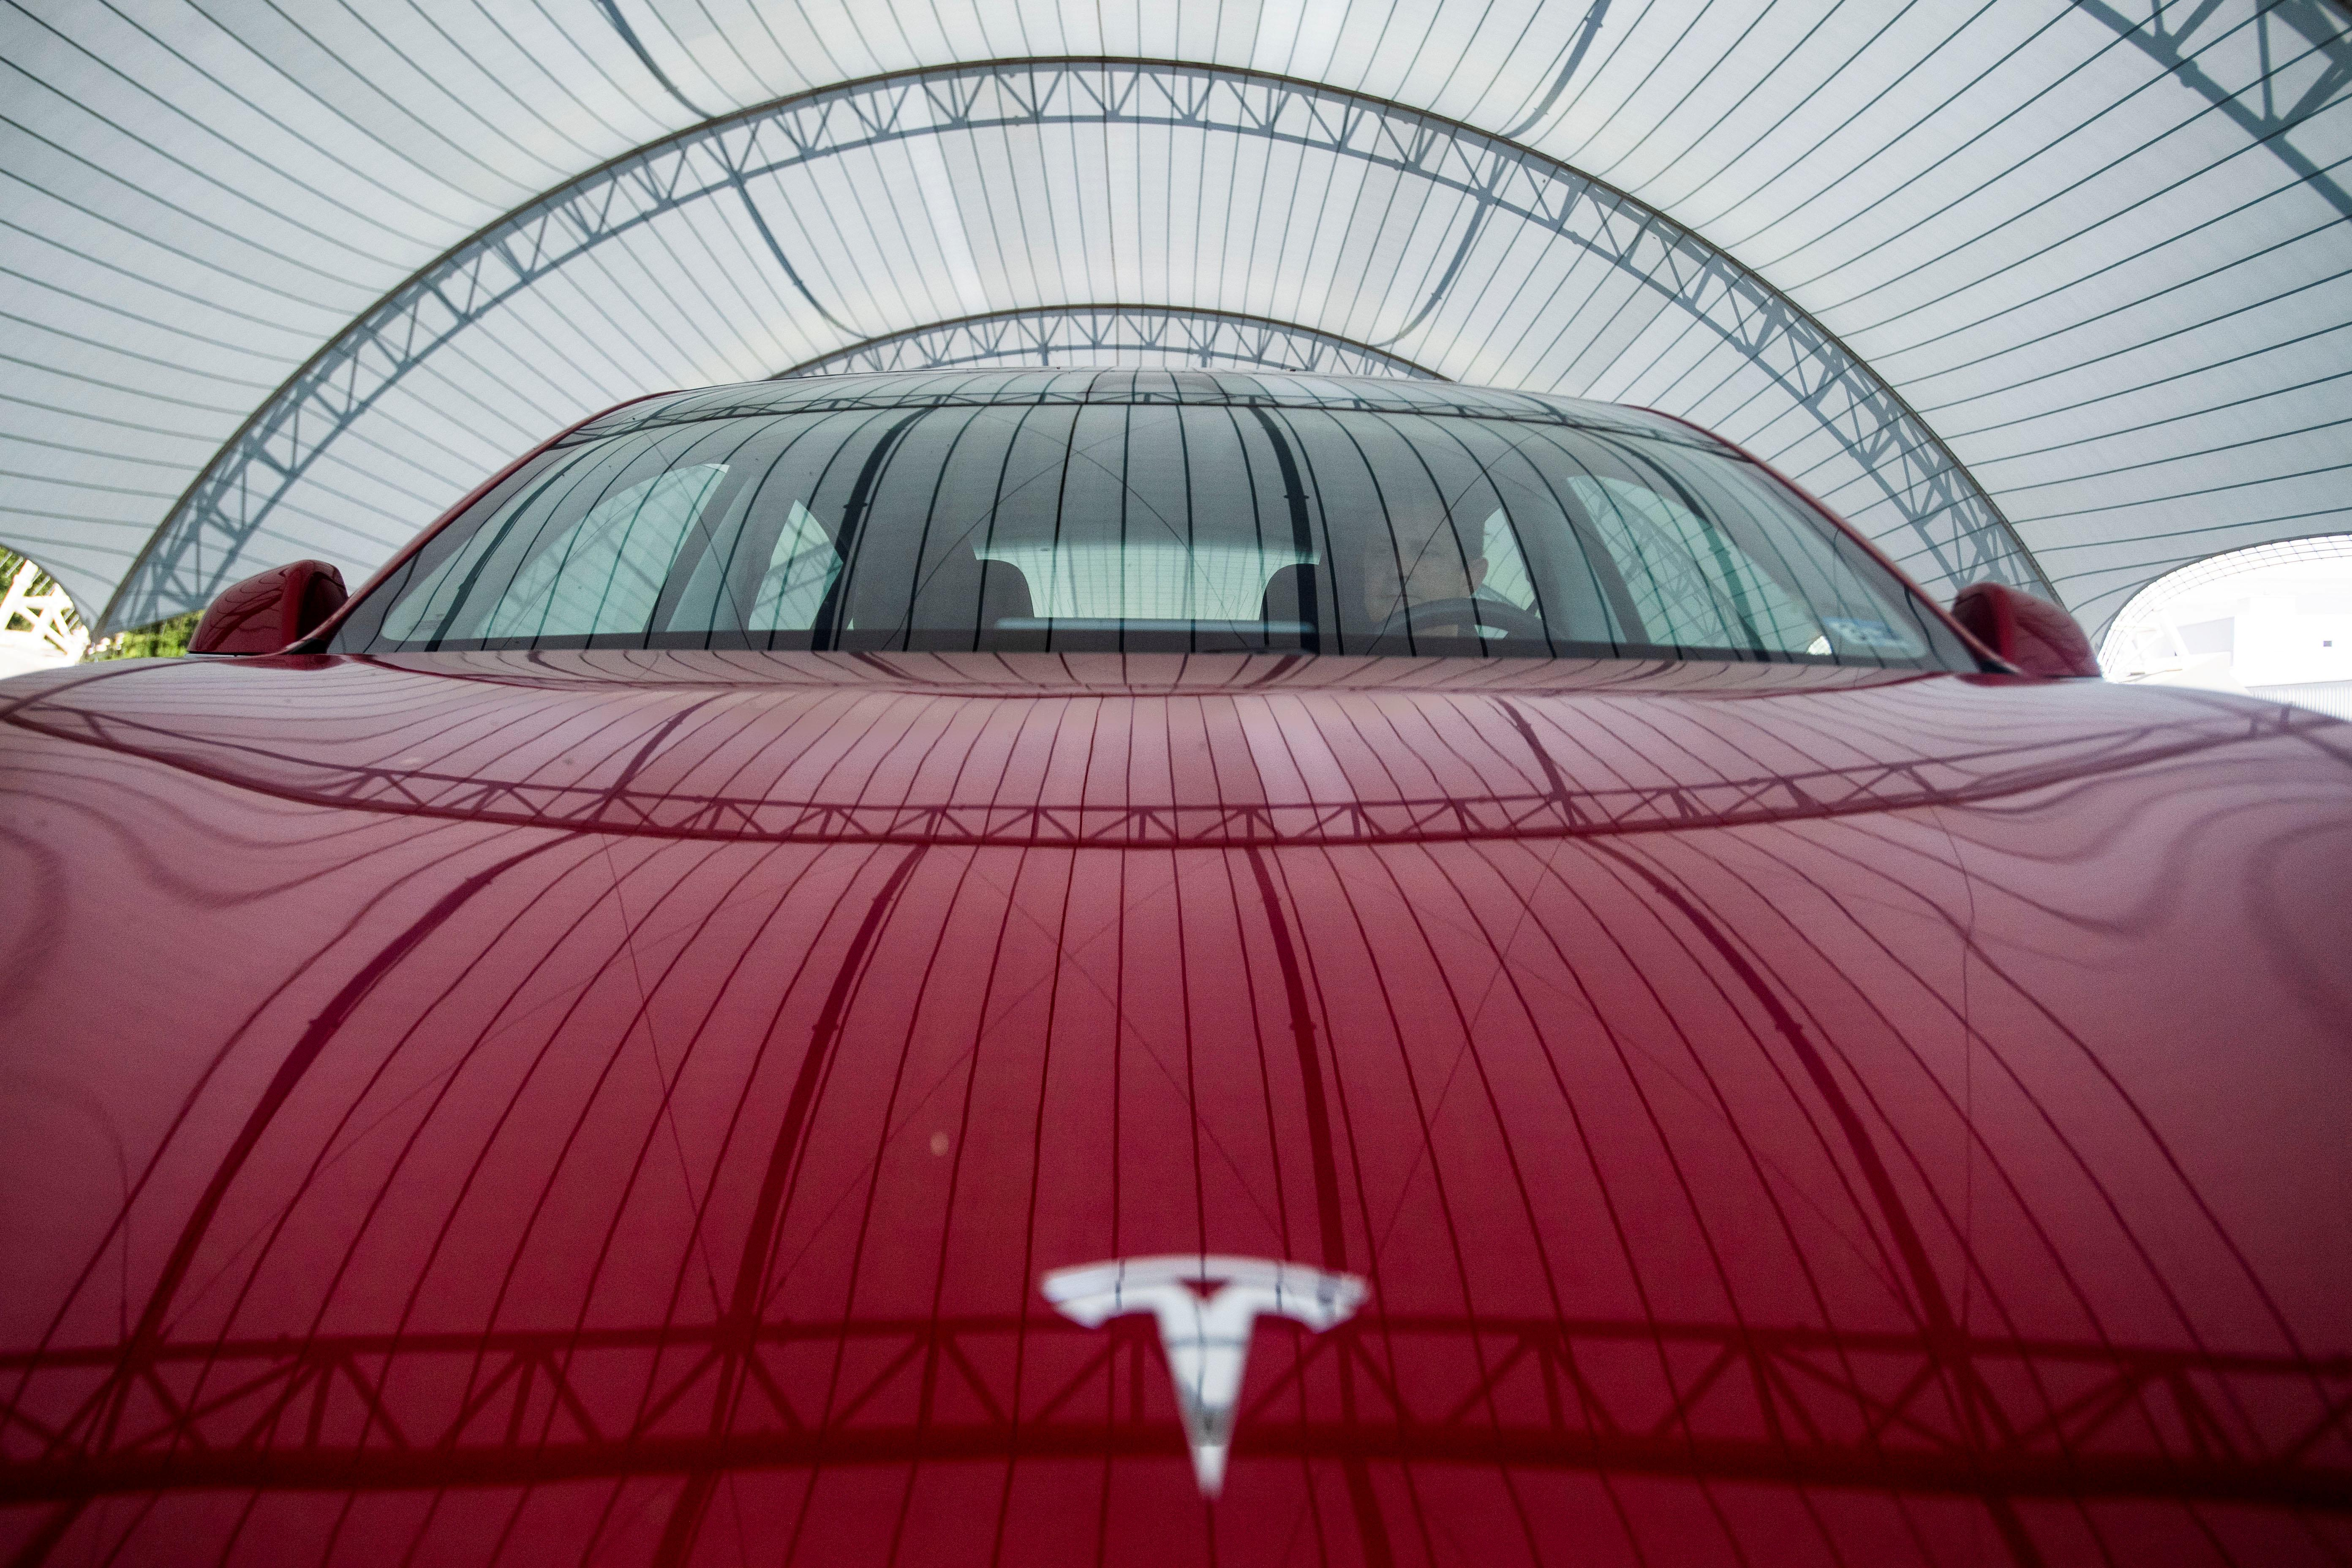 Rental firm walks away from Tesla order after quality dispute